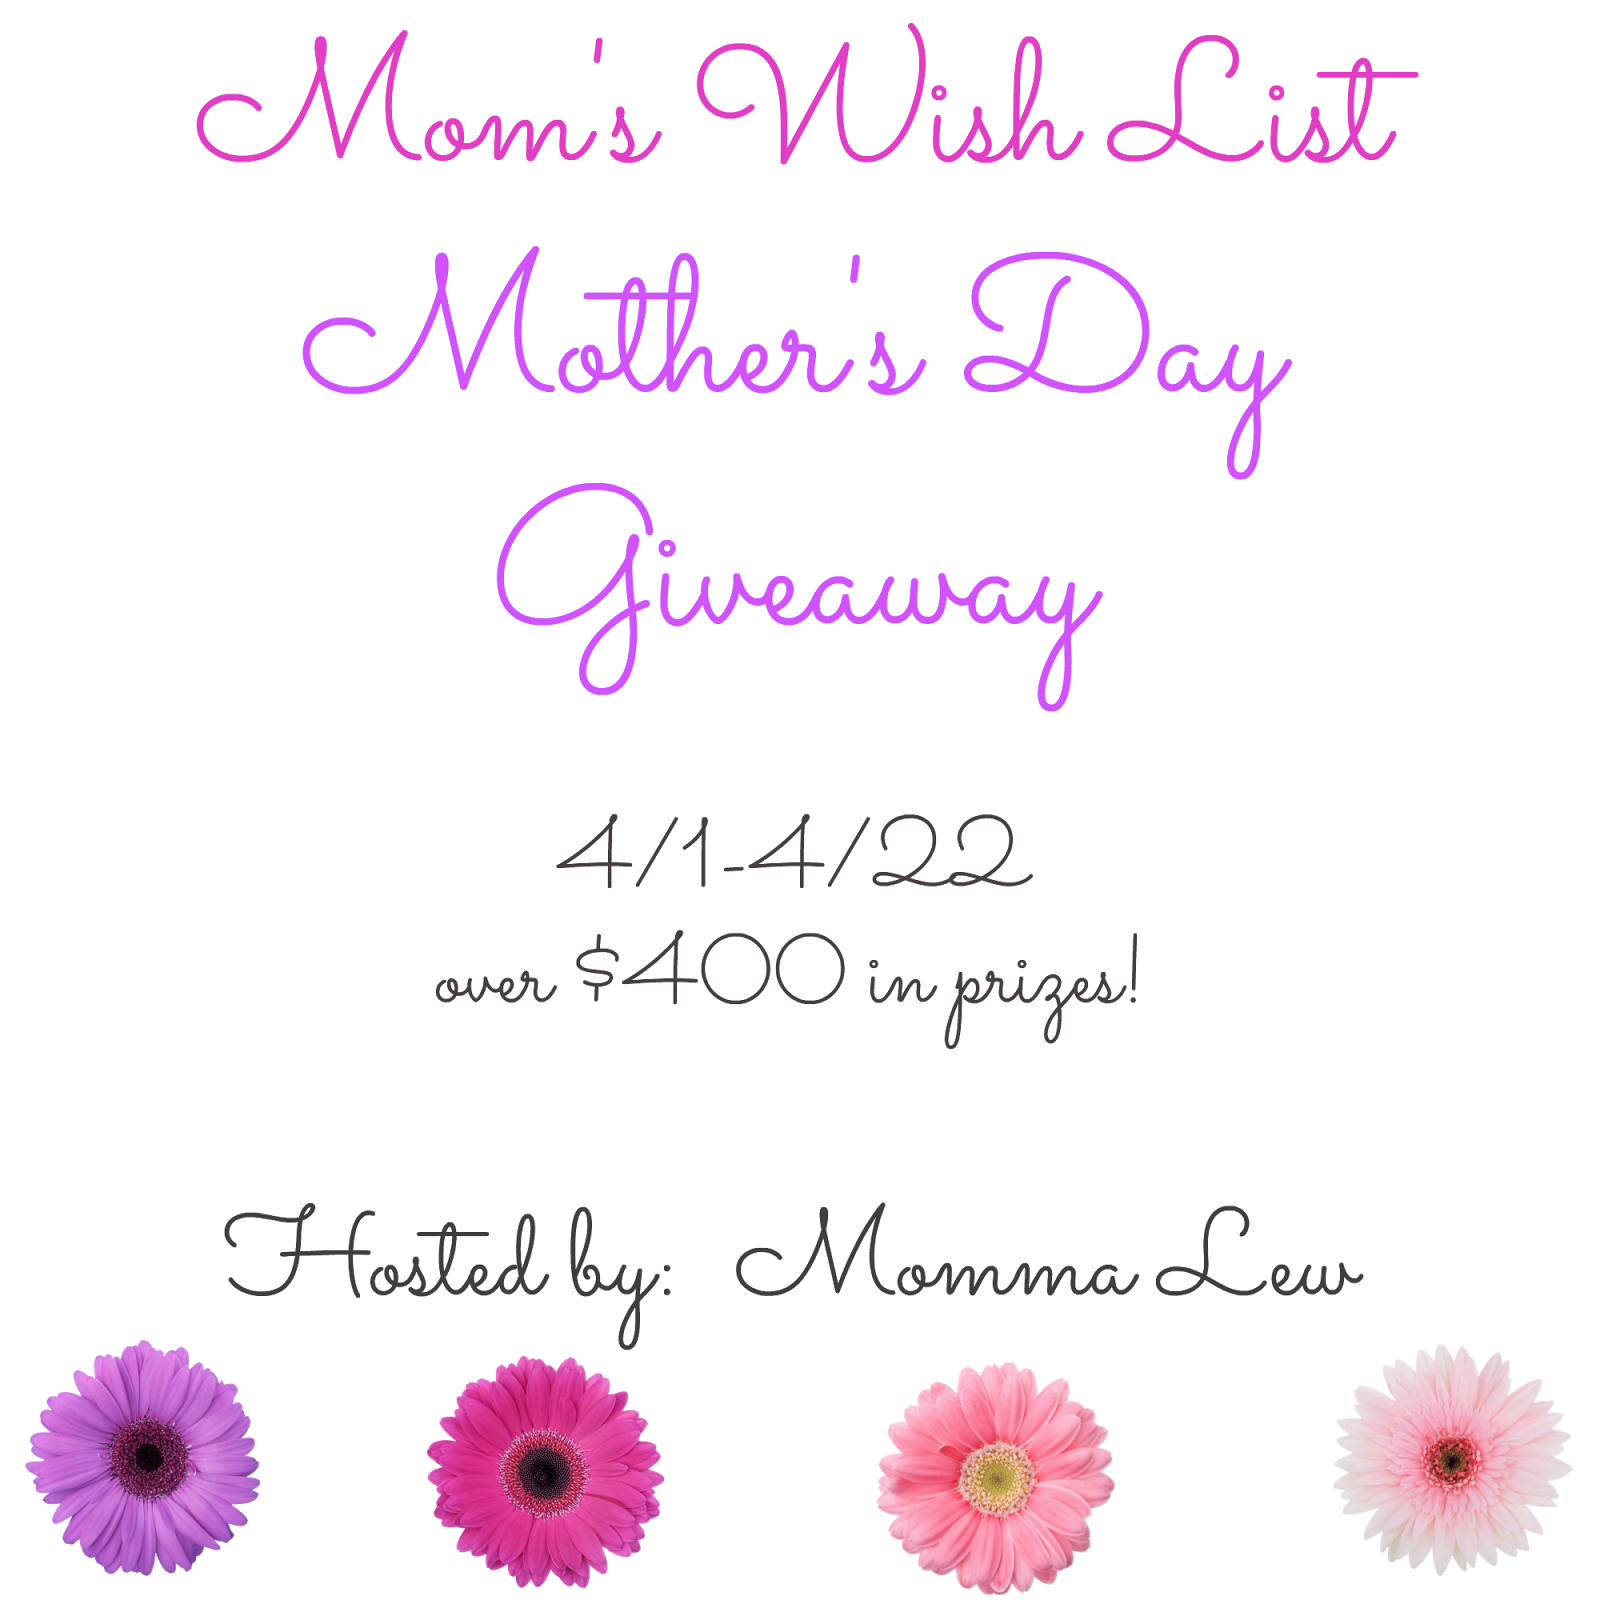 Mom blog giveaways with few entries